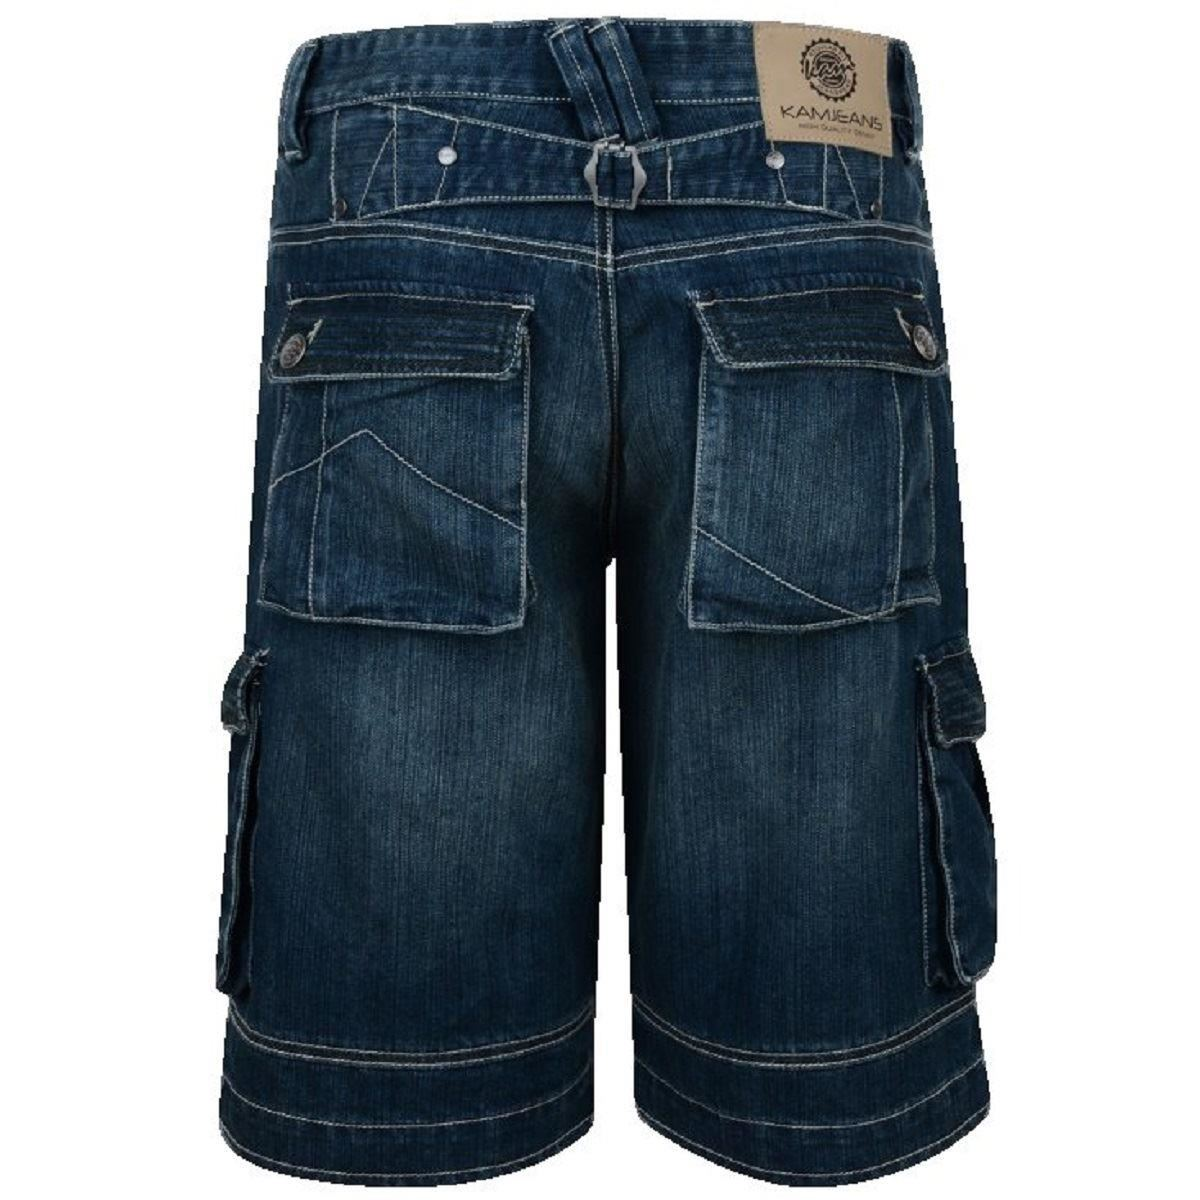 Find men's jeans for every body. Shop our extended sizes, different fits and famous brands including Wrangler and Levis.